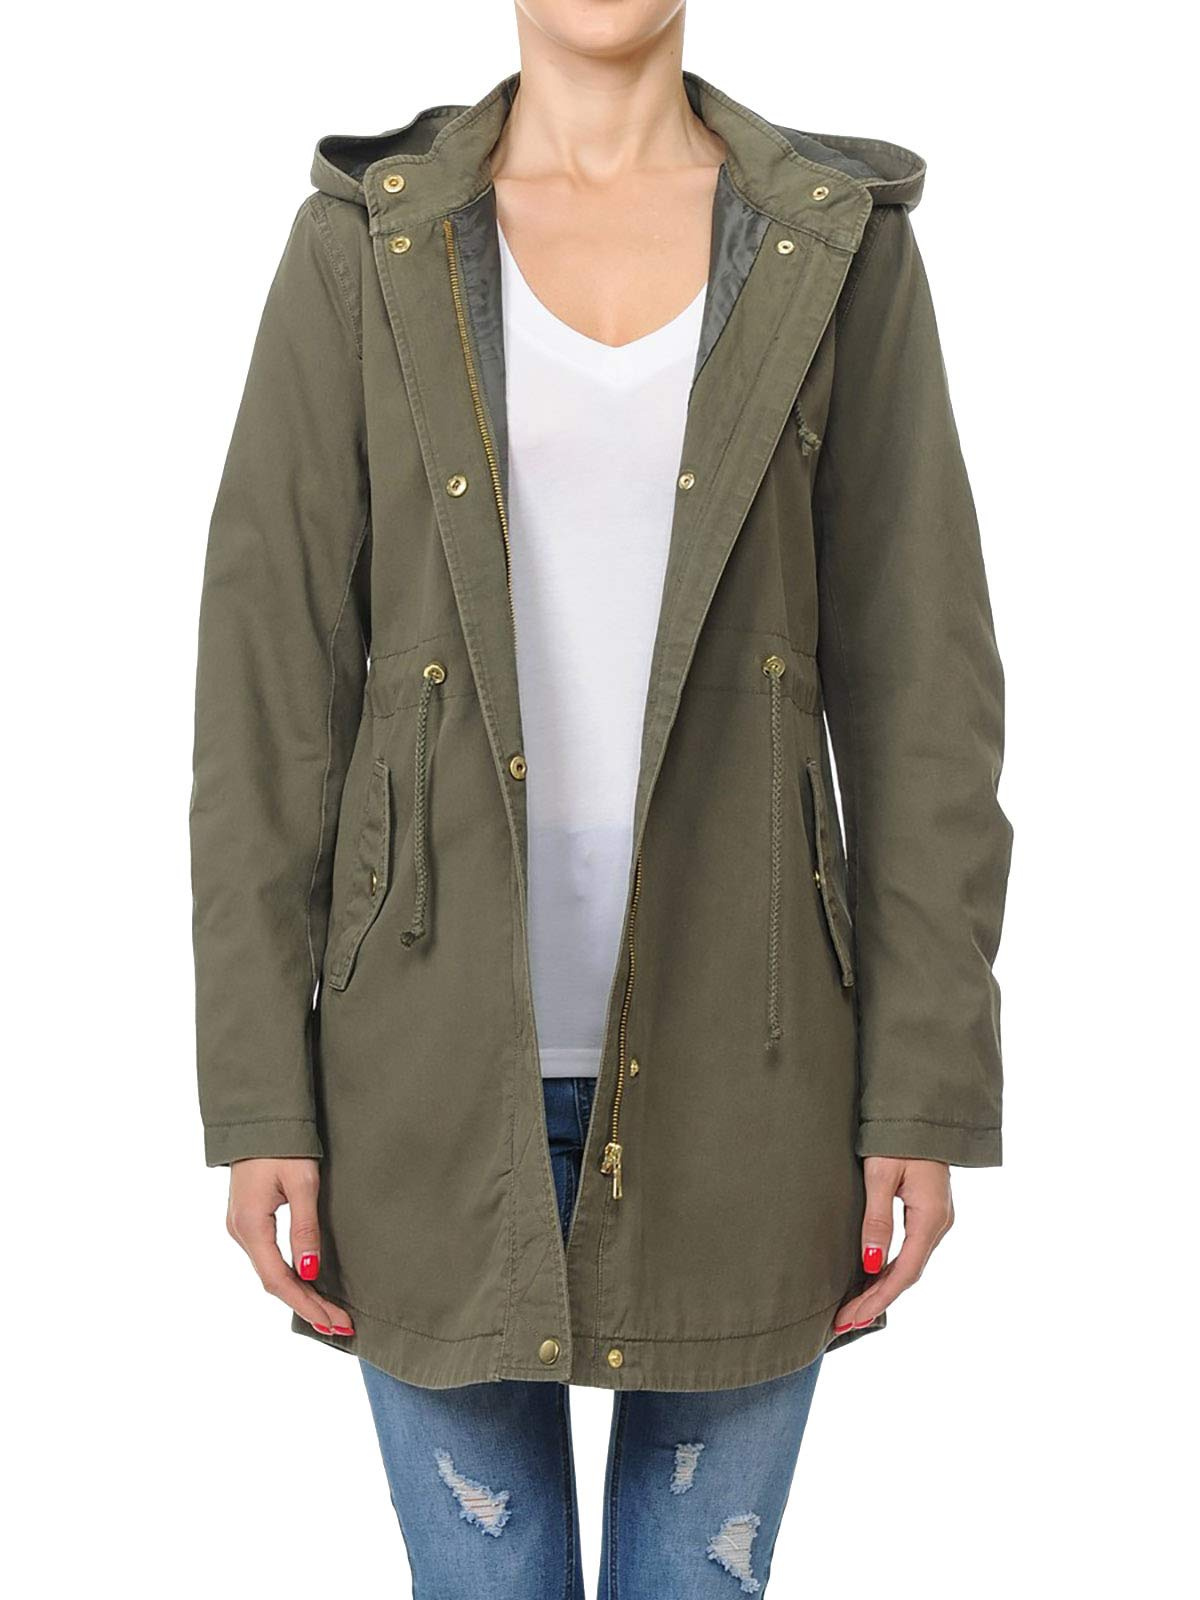 Instar Mode Women's Trendy Cotton Oversized Hooded Anorak Jacket Olive L